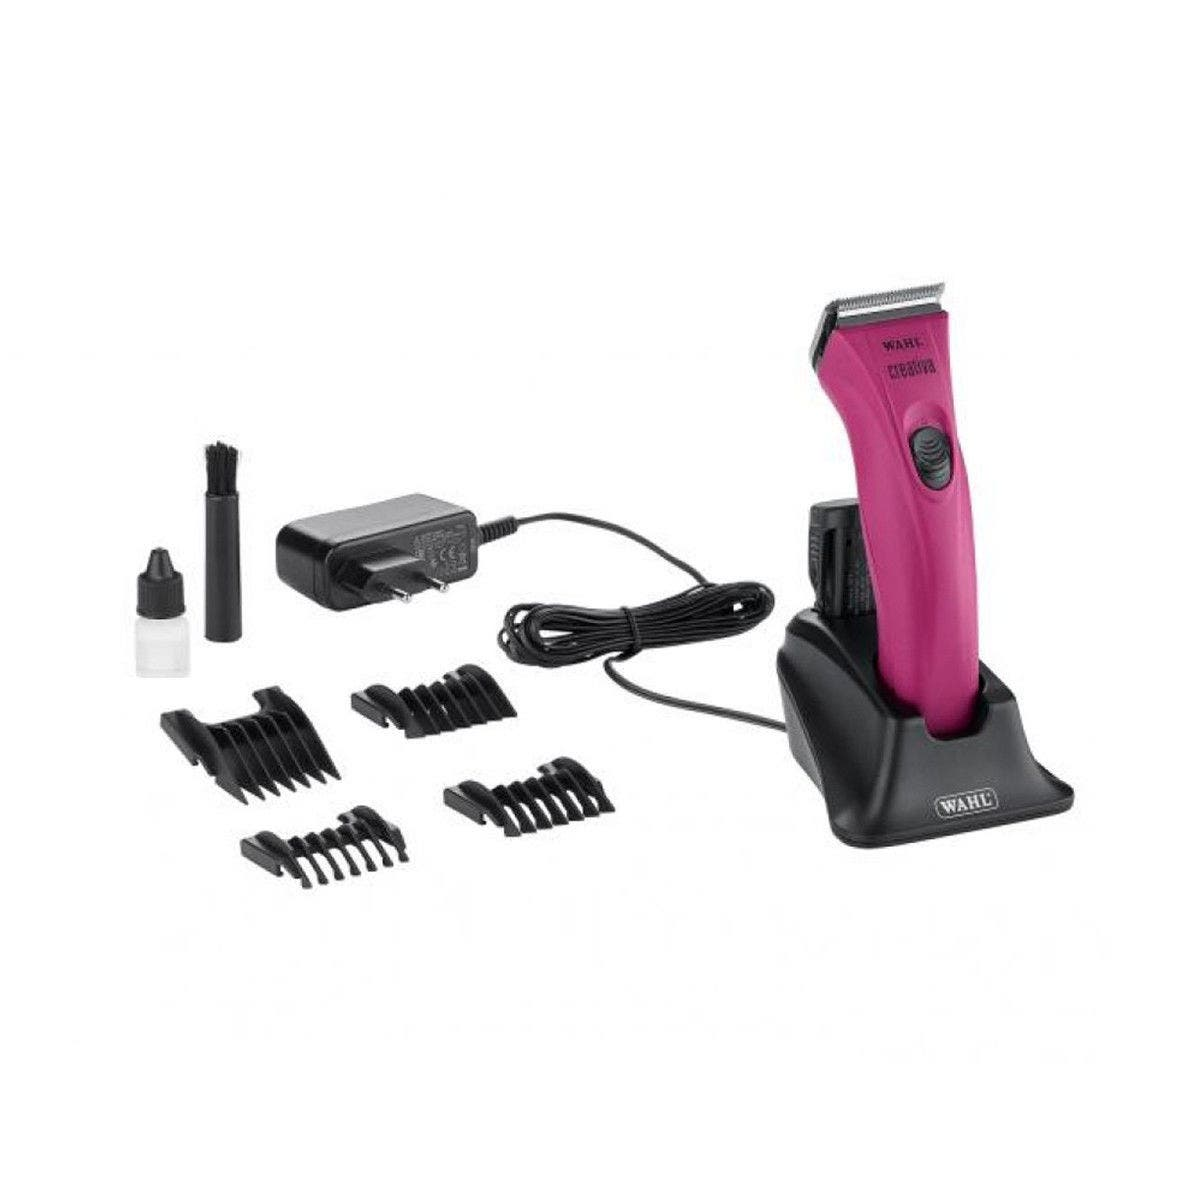 WAHL Creativa Professional Animal Clipper with 5 in 1 Blade 1876-0482